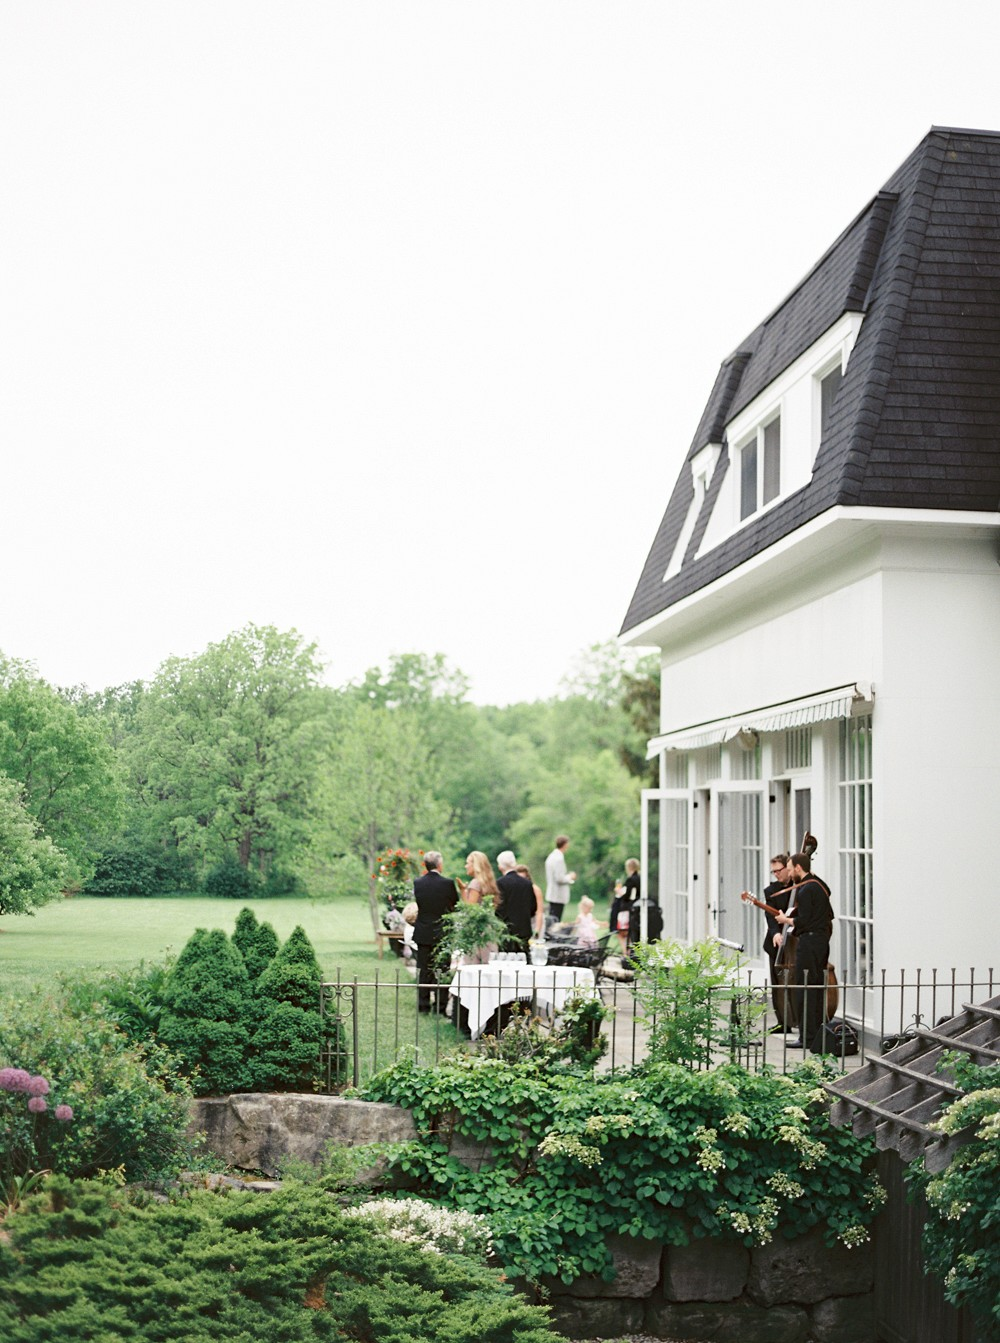 Ontario wedding venue   Sophisticated Real Wedding in Ontario by When He Found Her on Wedding Sparrow